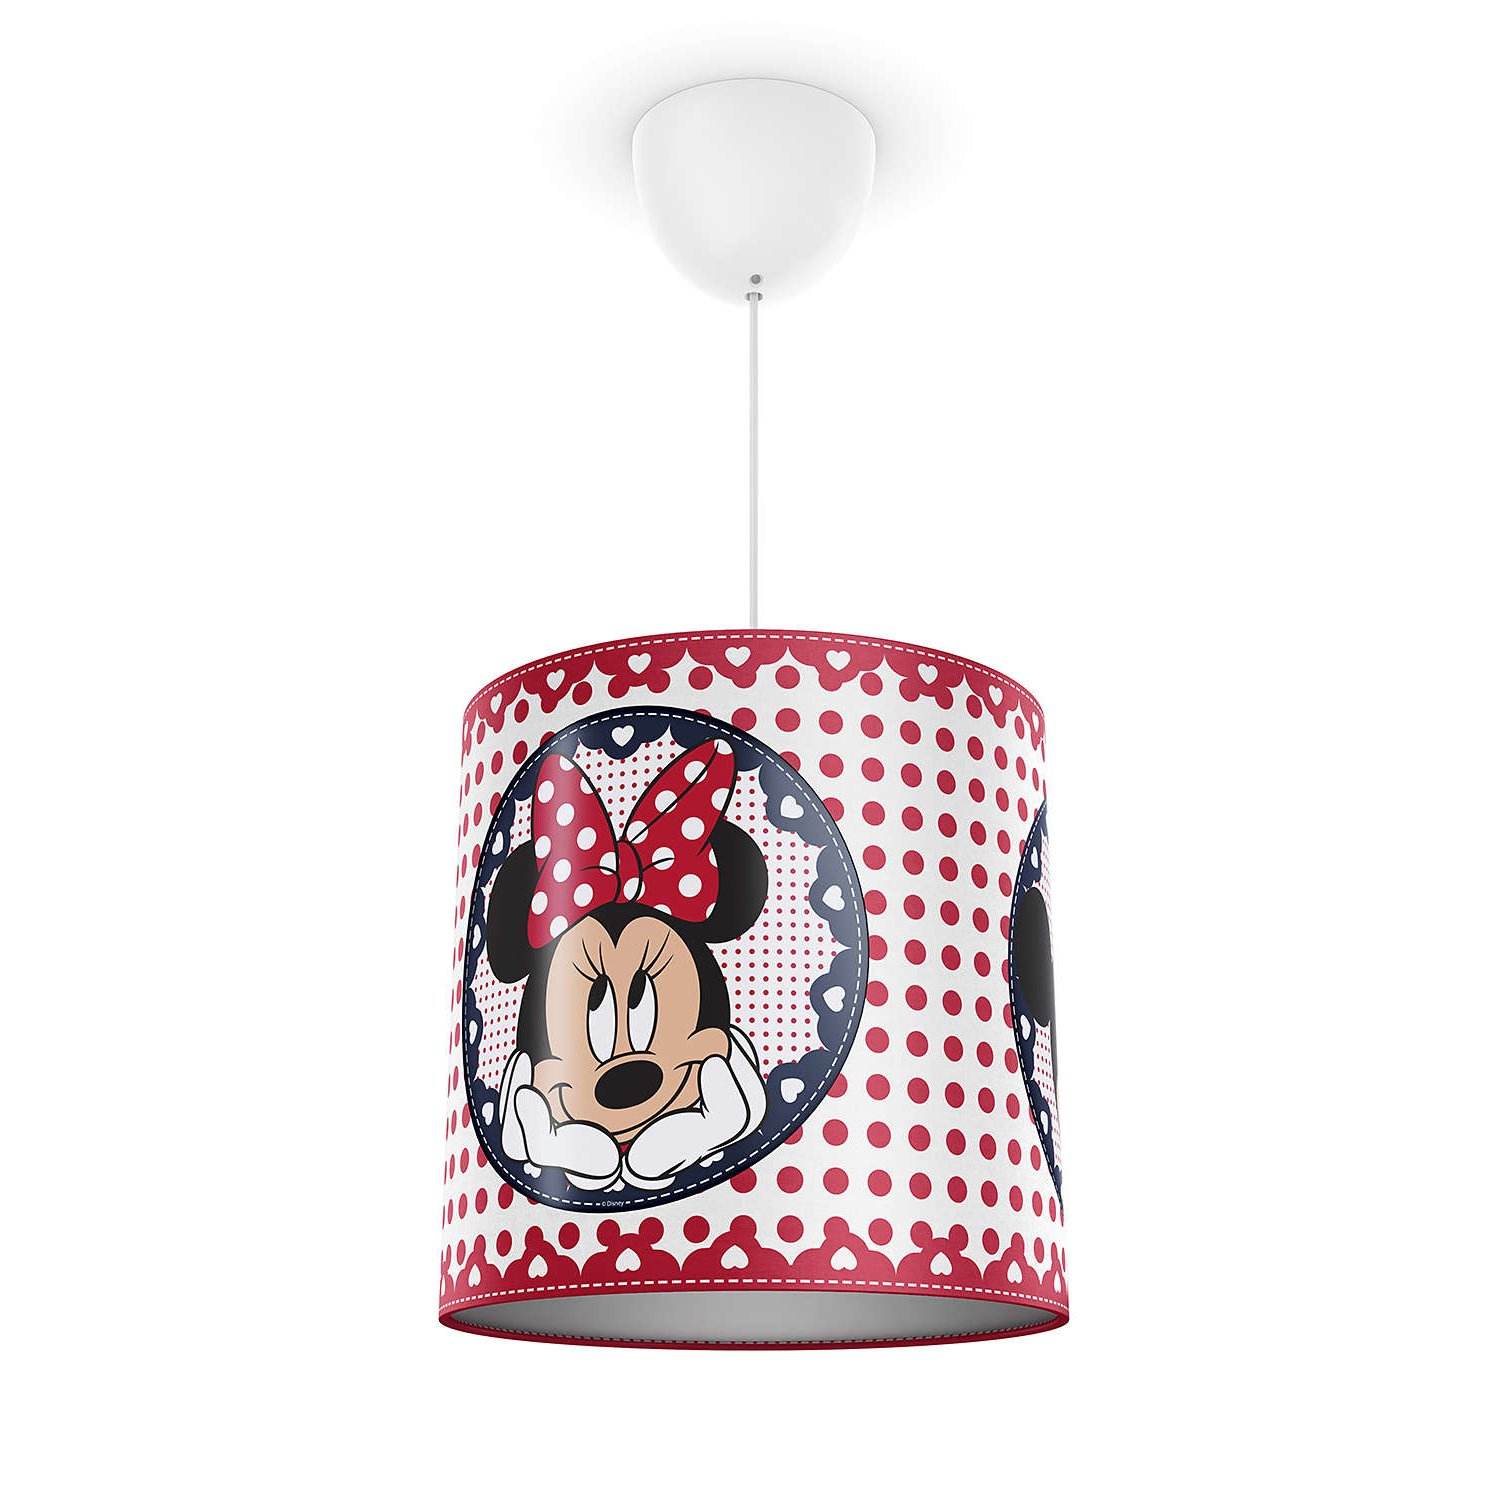 corp de iluminat philips, minnie mouse